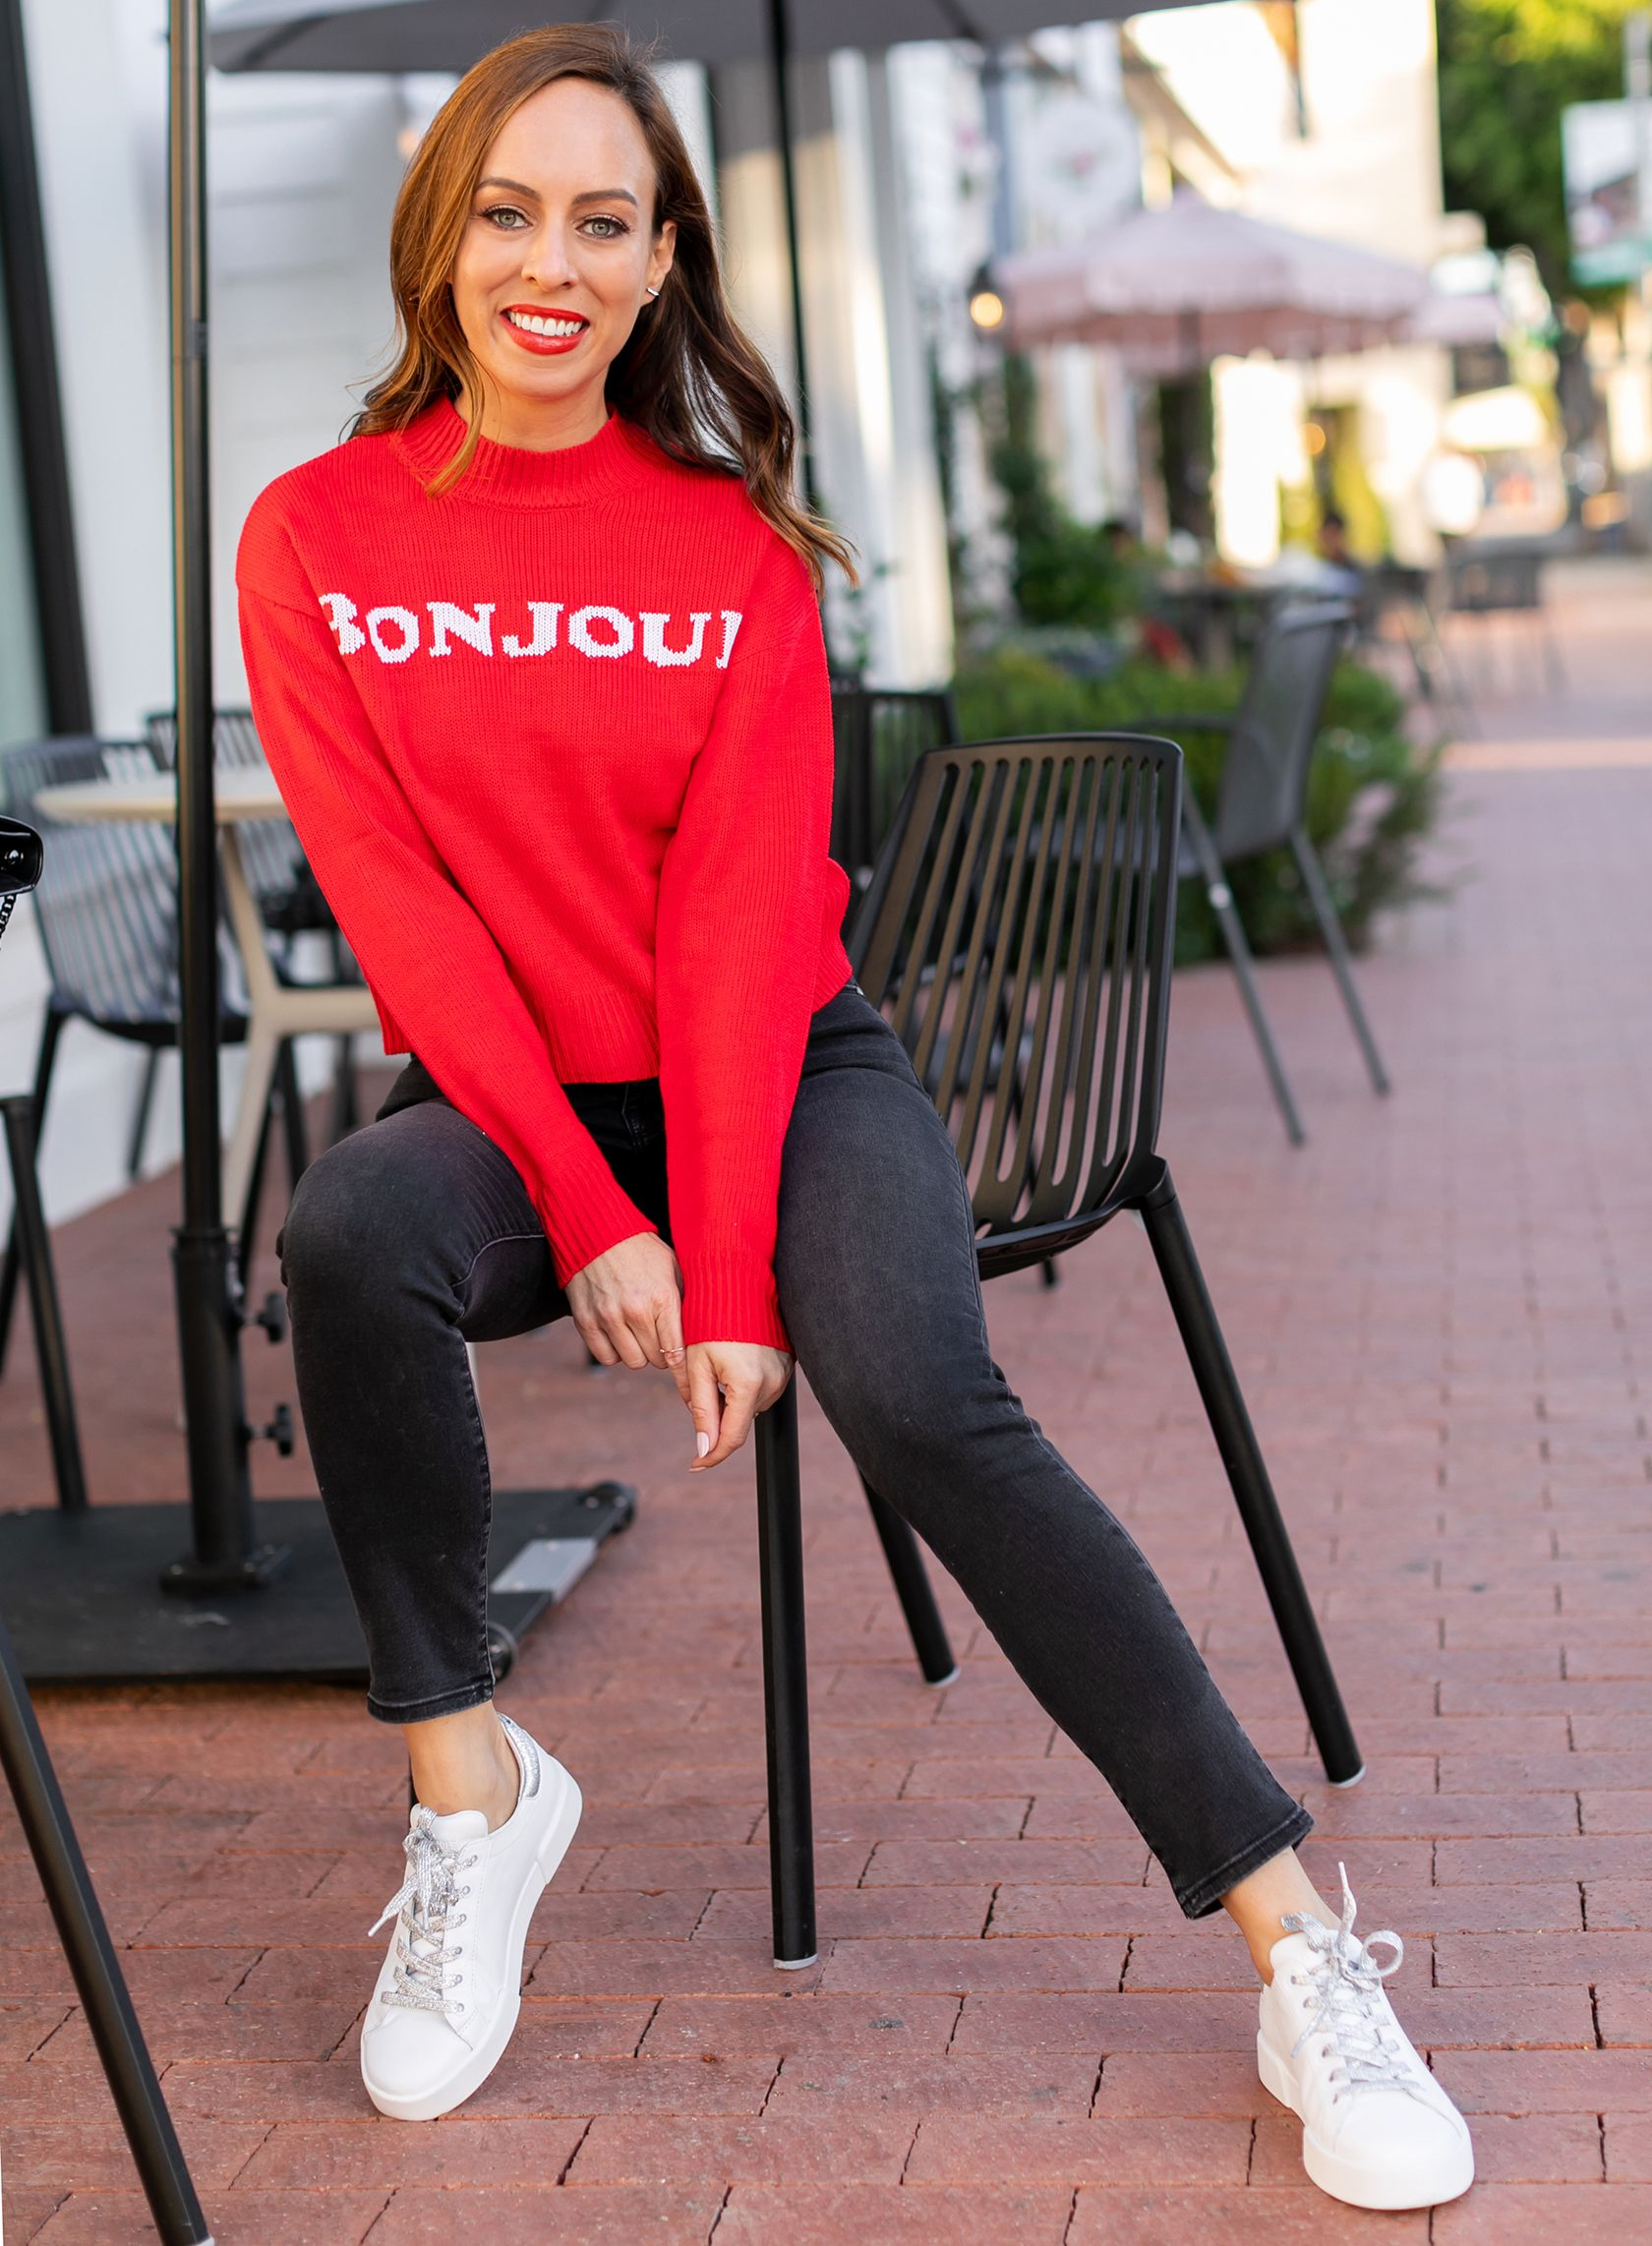 6653d9aee4 Sydne Style shows casual outfit ideas in red graphic sweater and white  sneakers